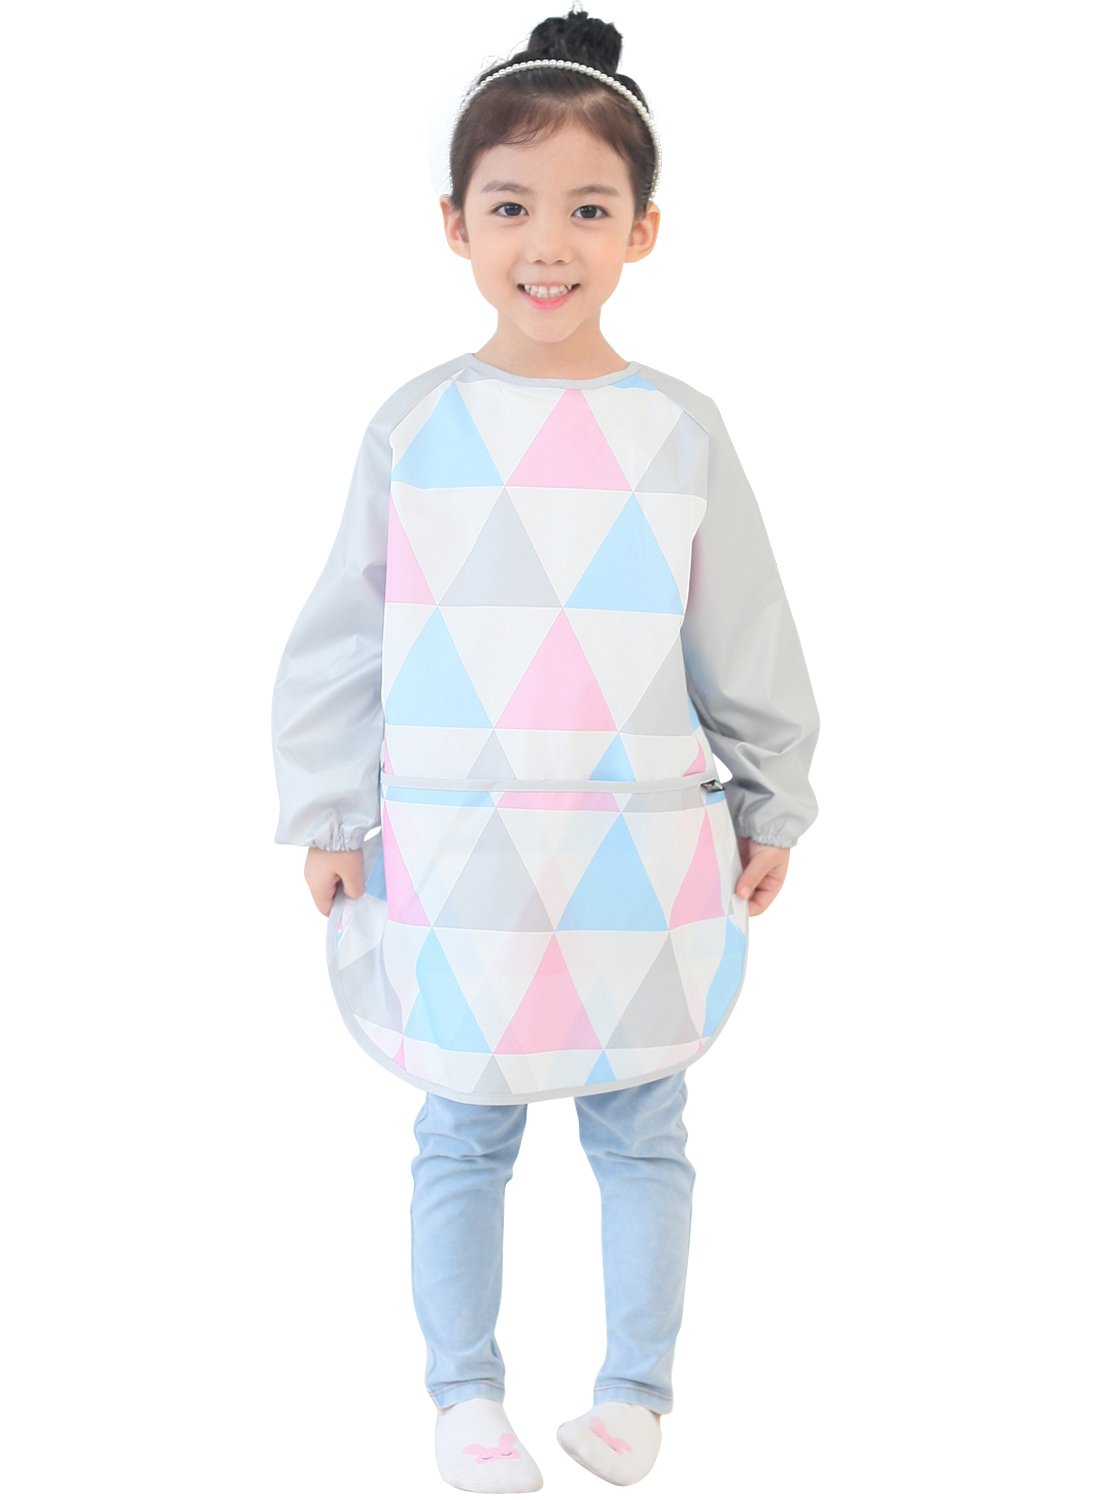 Plie Kids Art Smocks, Children Waterproof Artist Painting Aprons Long Sleeve with Pockets, Pink Triangle (20-L)